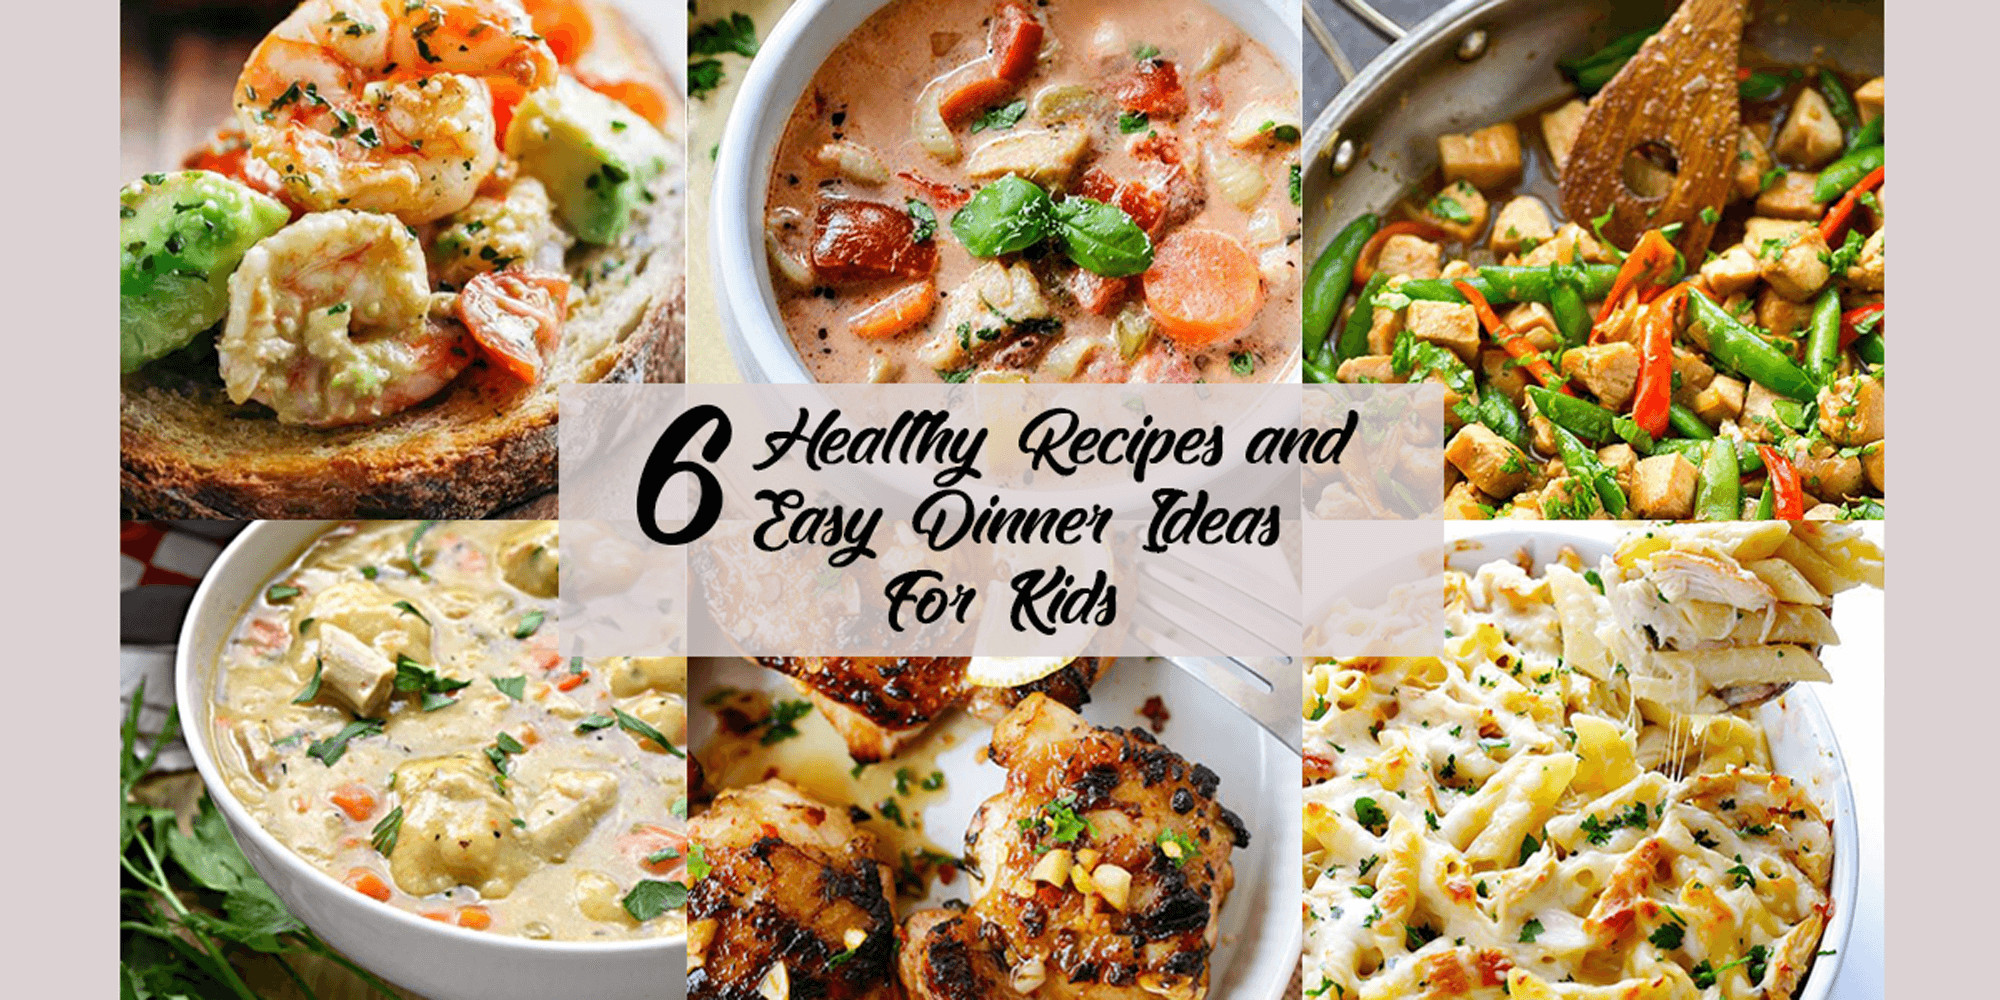 Healthy Dinner Ideas For Kids  6 Healthy and Easy Dinner Ideas for Kids